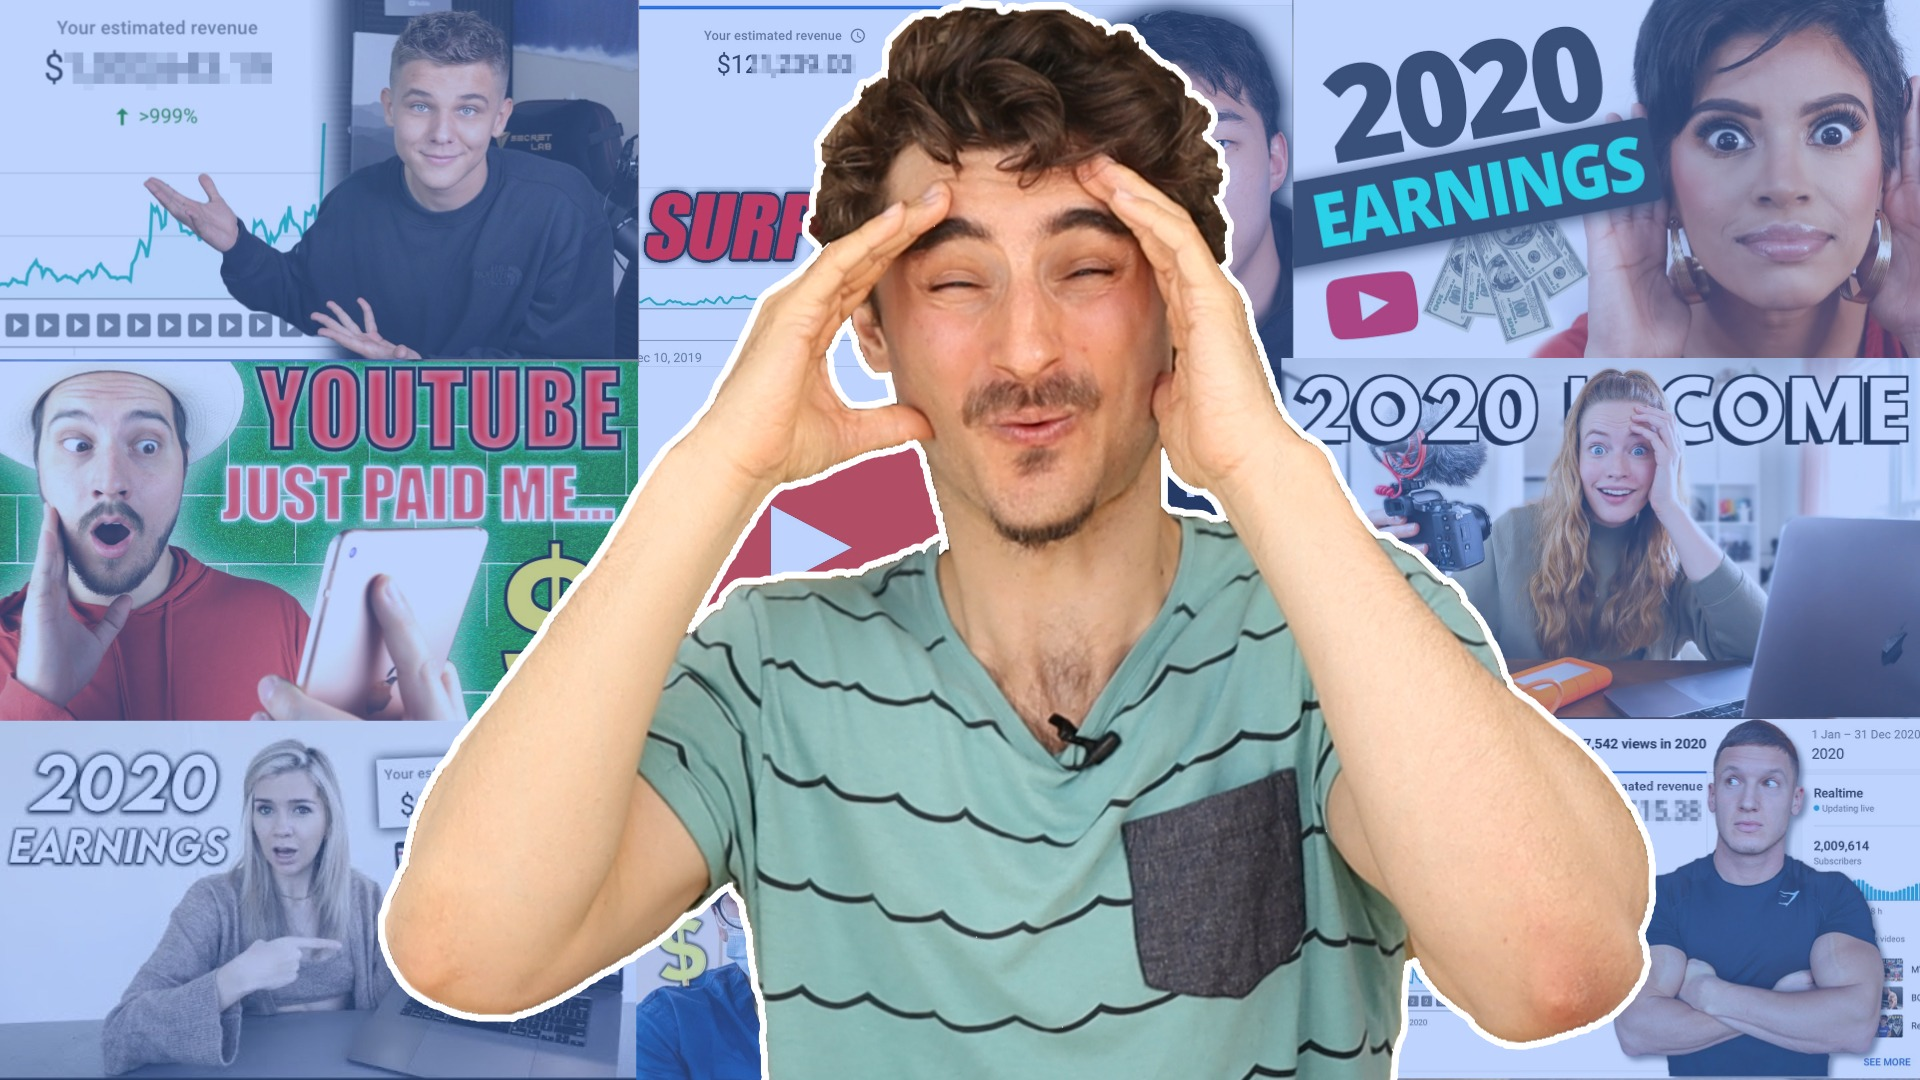 How much do YouTubers make? I Reviewed 100 YOUTUBER INCOME Videos, Here's What I Learned